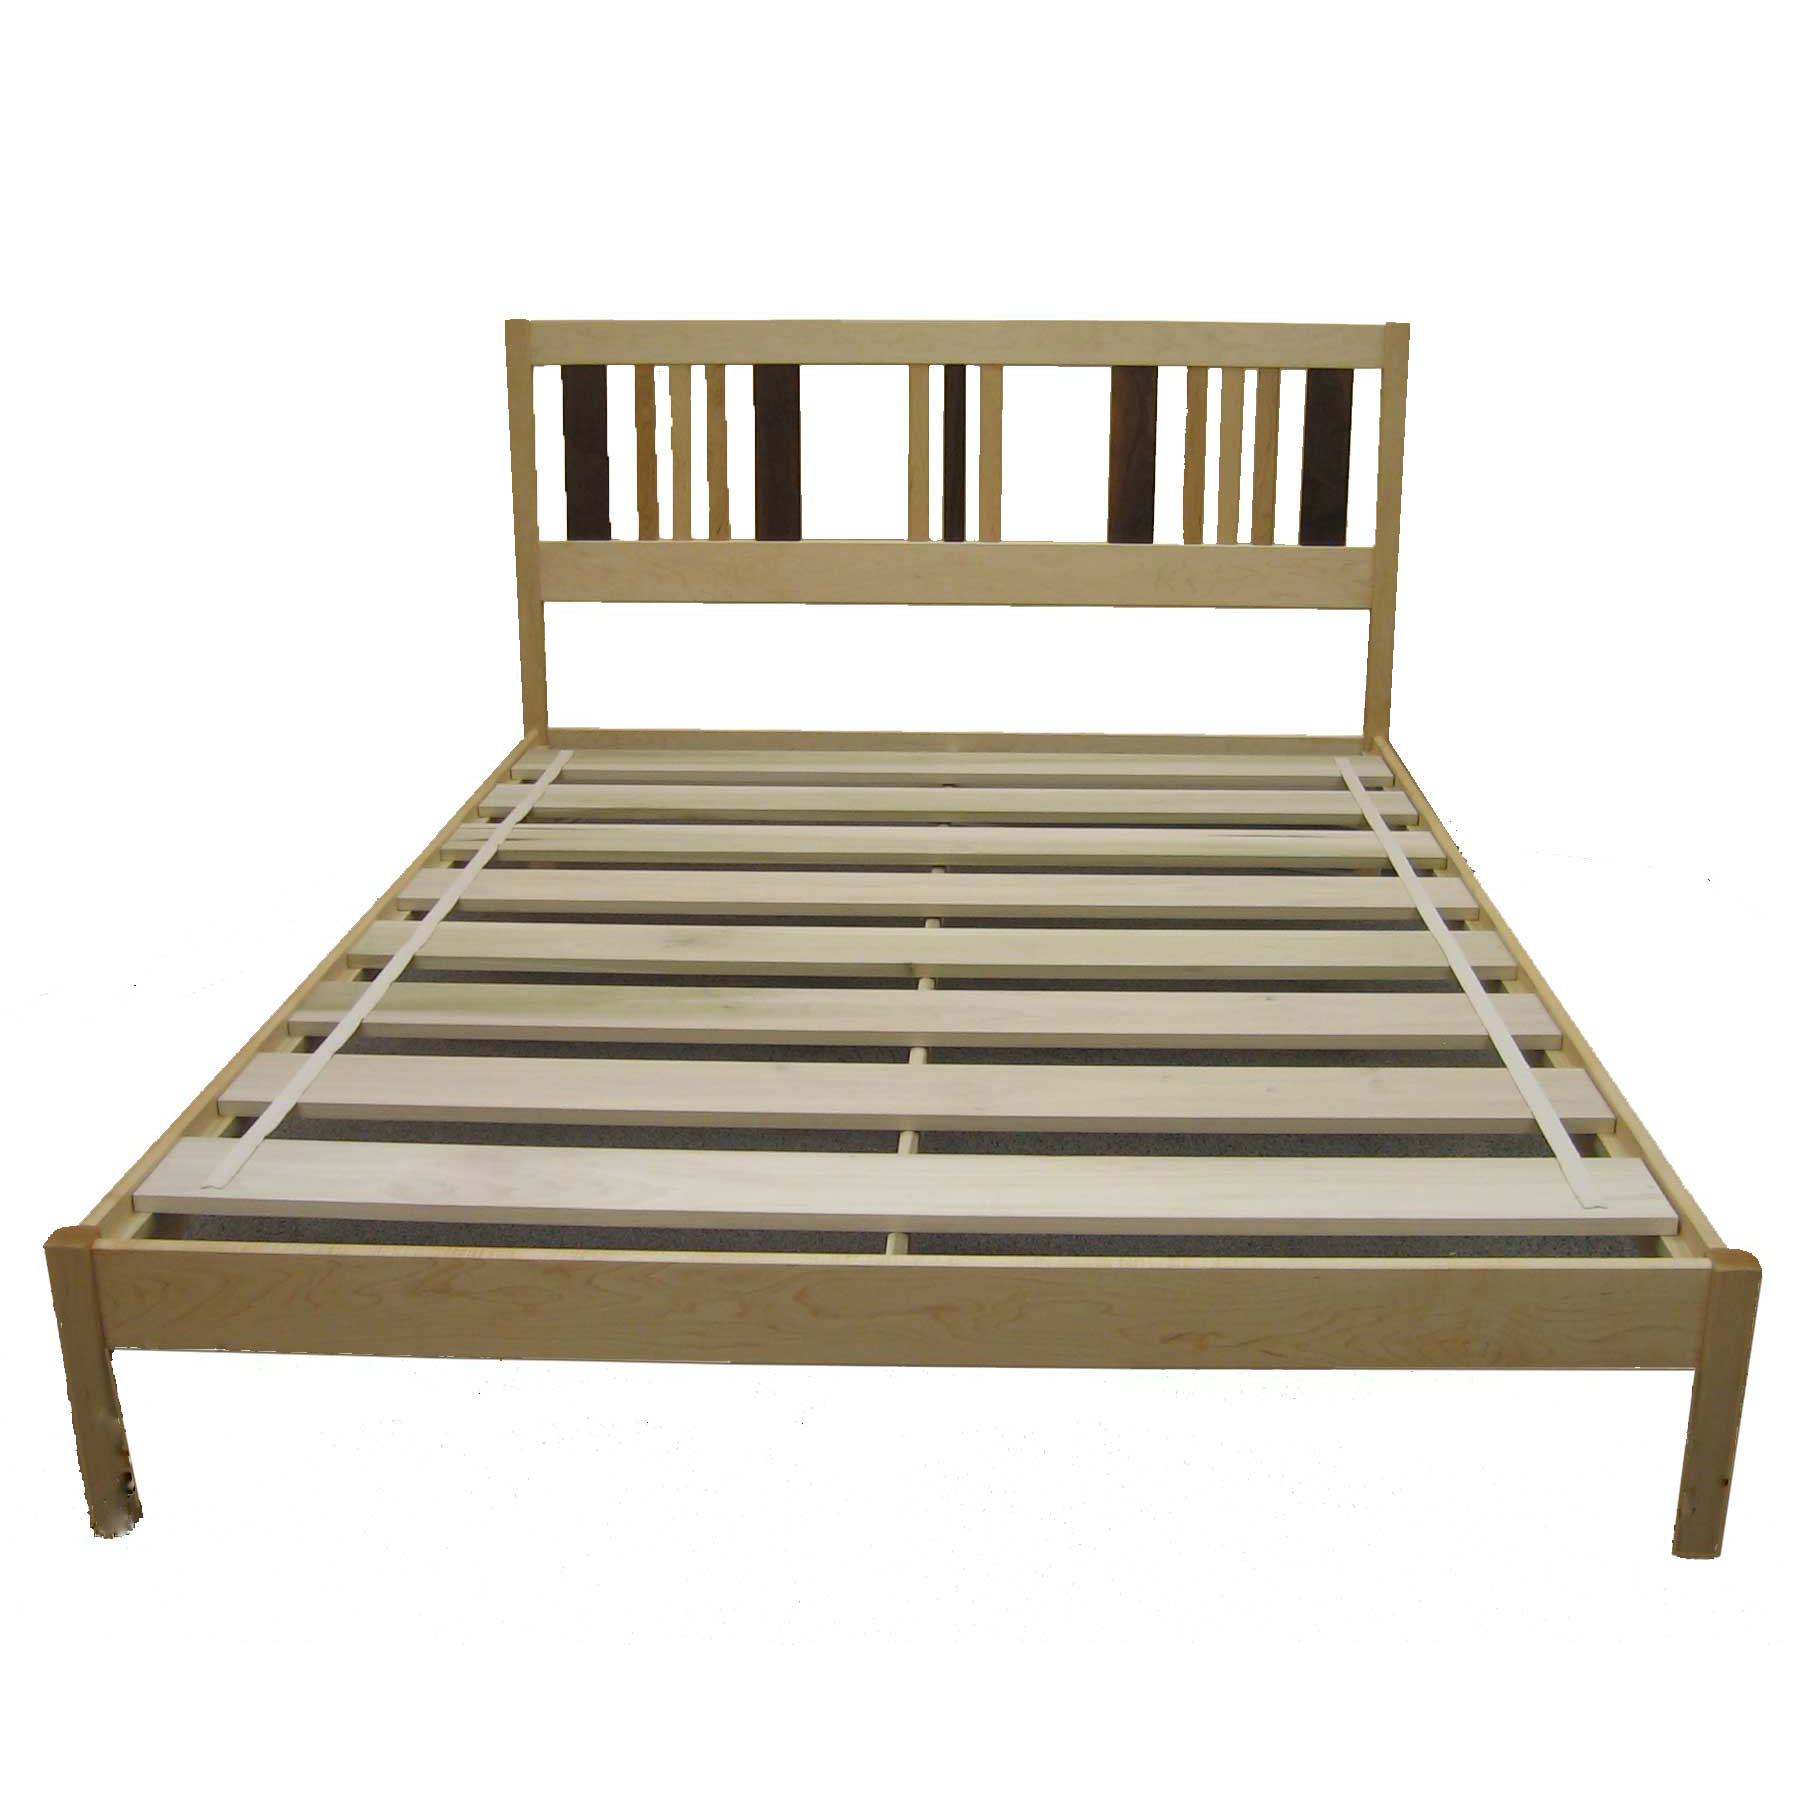 Solid Maple Beds-Dressers-Nightstands-Chairs-Sustainably Made in USA-